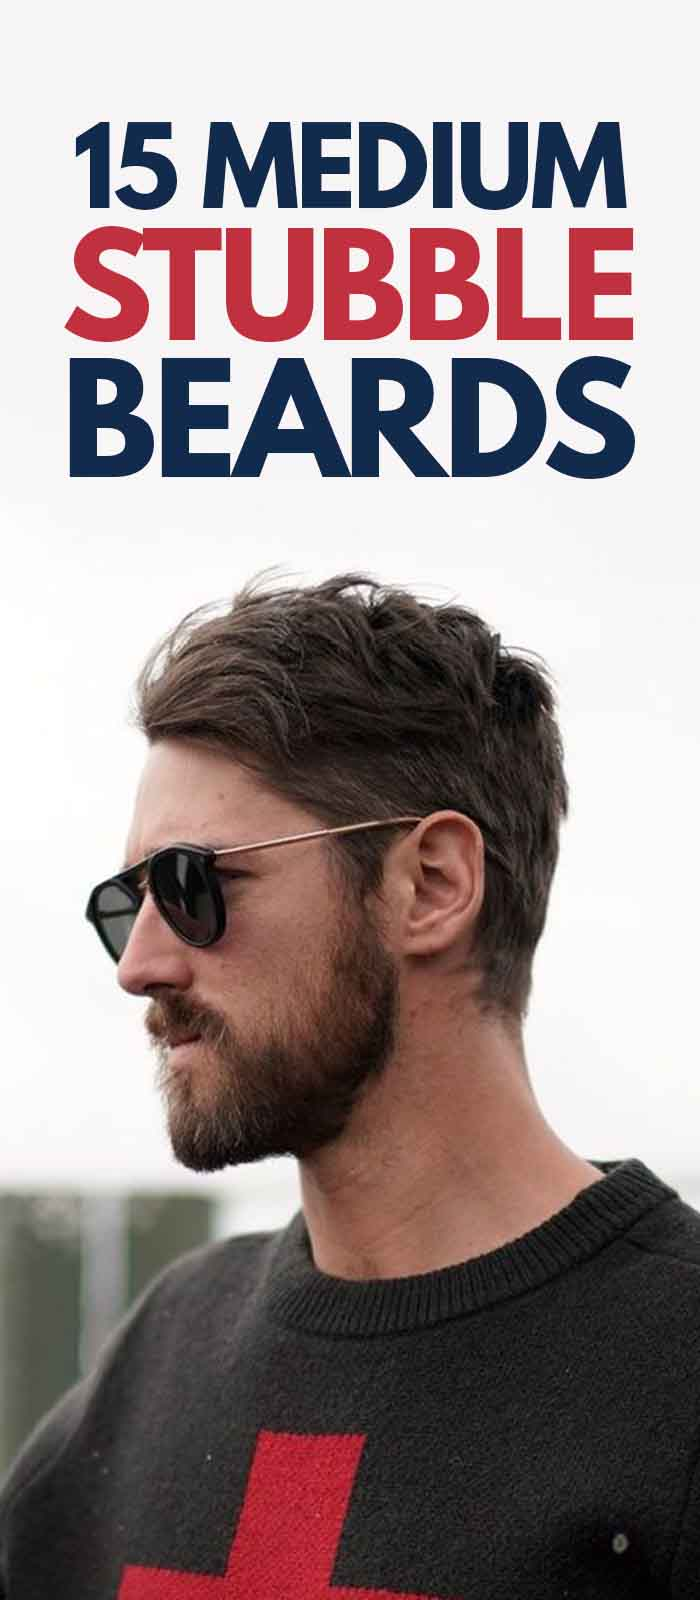 Medium Stubble beard styling for men!